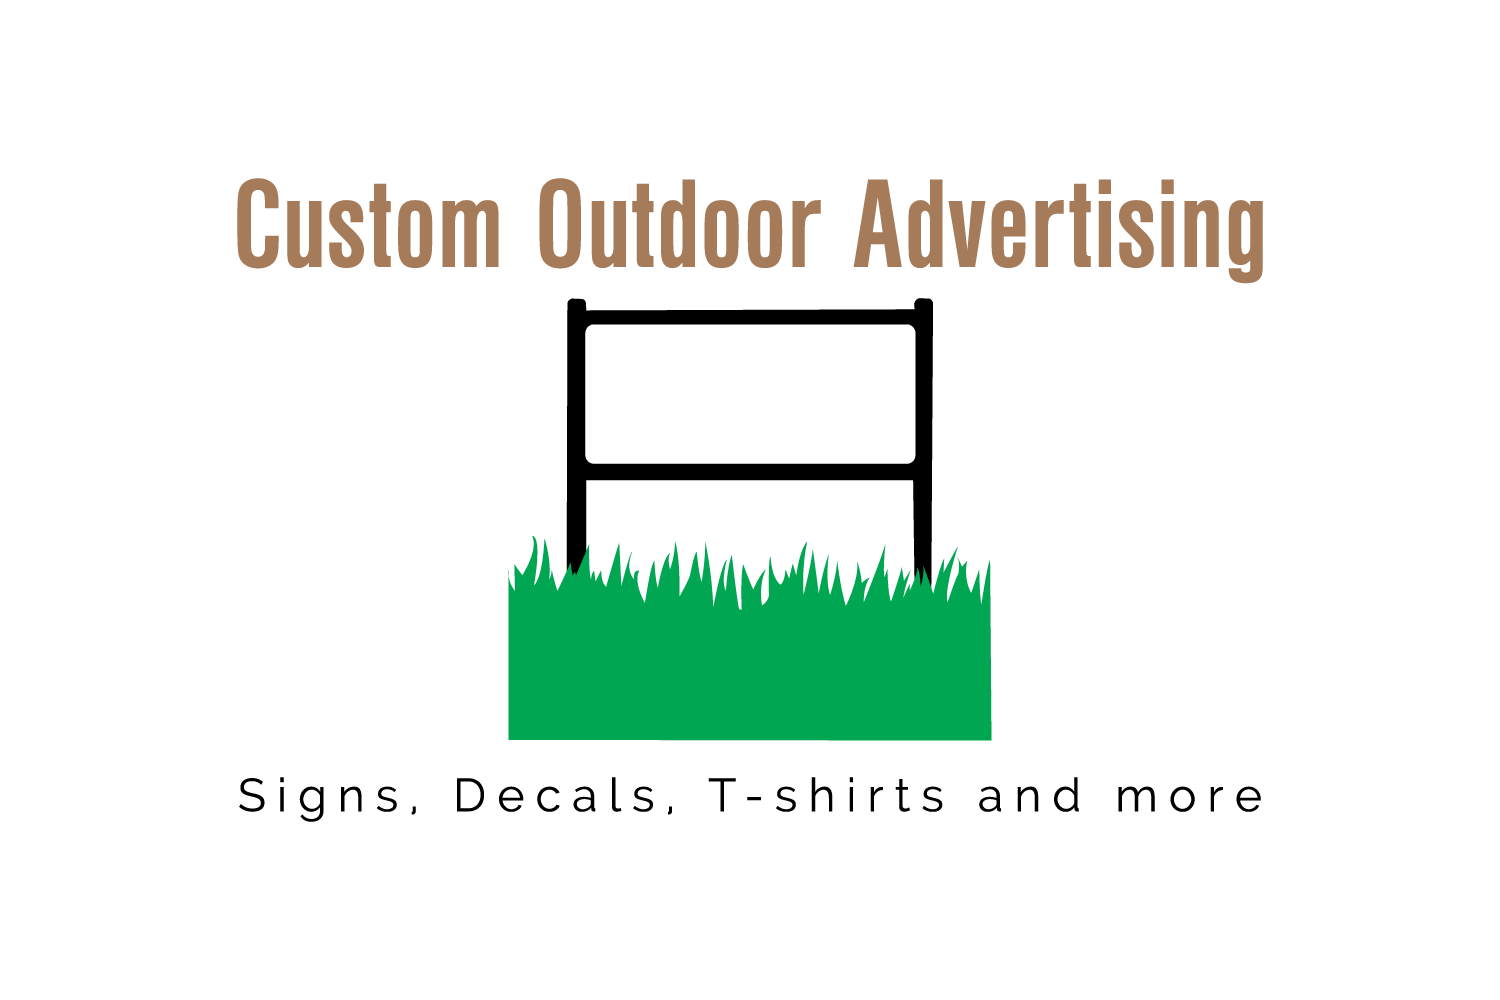 Custom Outdoor Advertizing